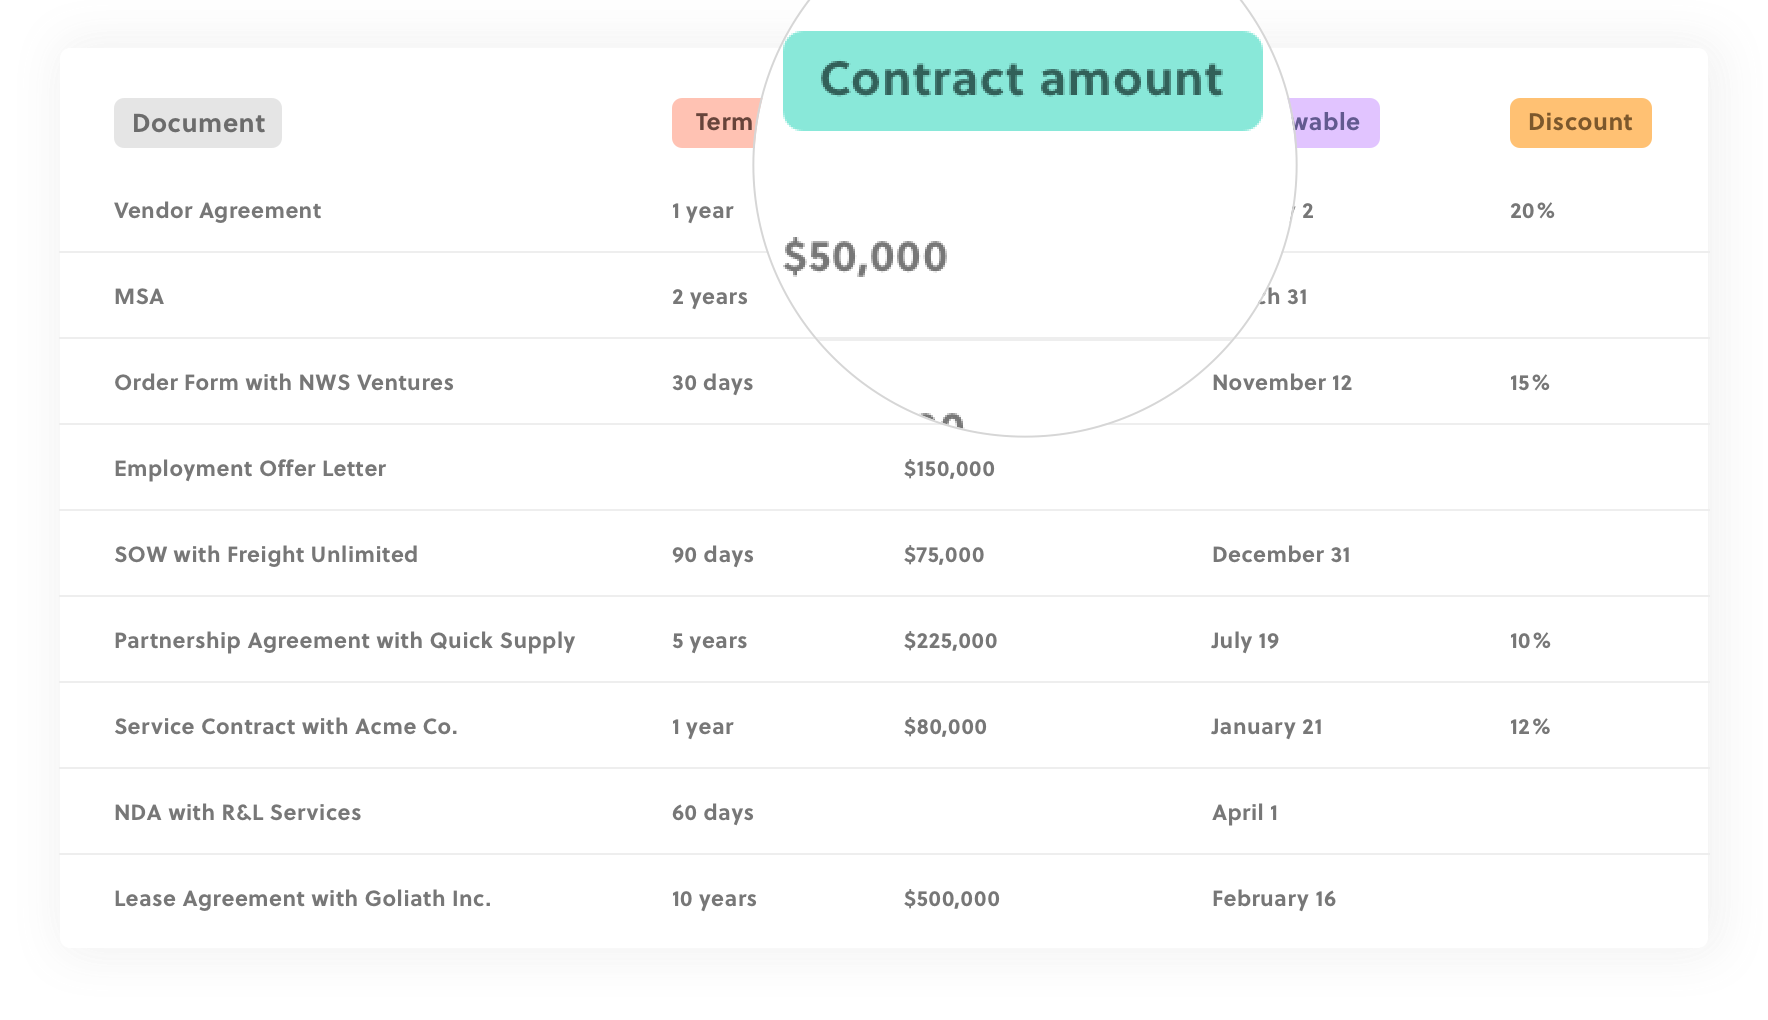 Smart fields: Compare thousands of documents in seconds